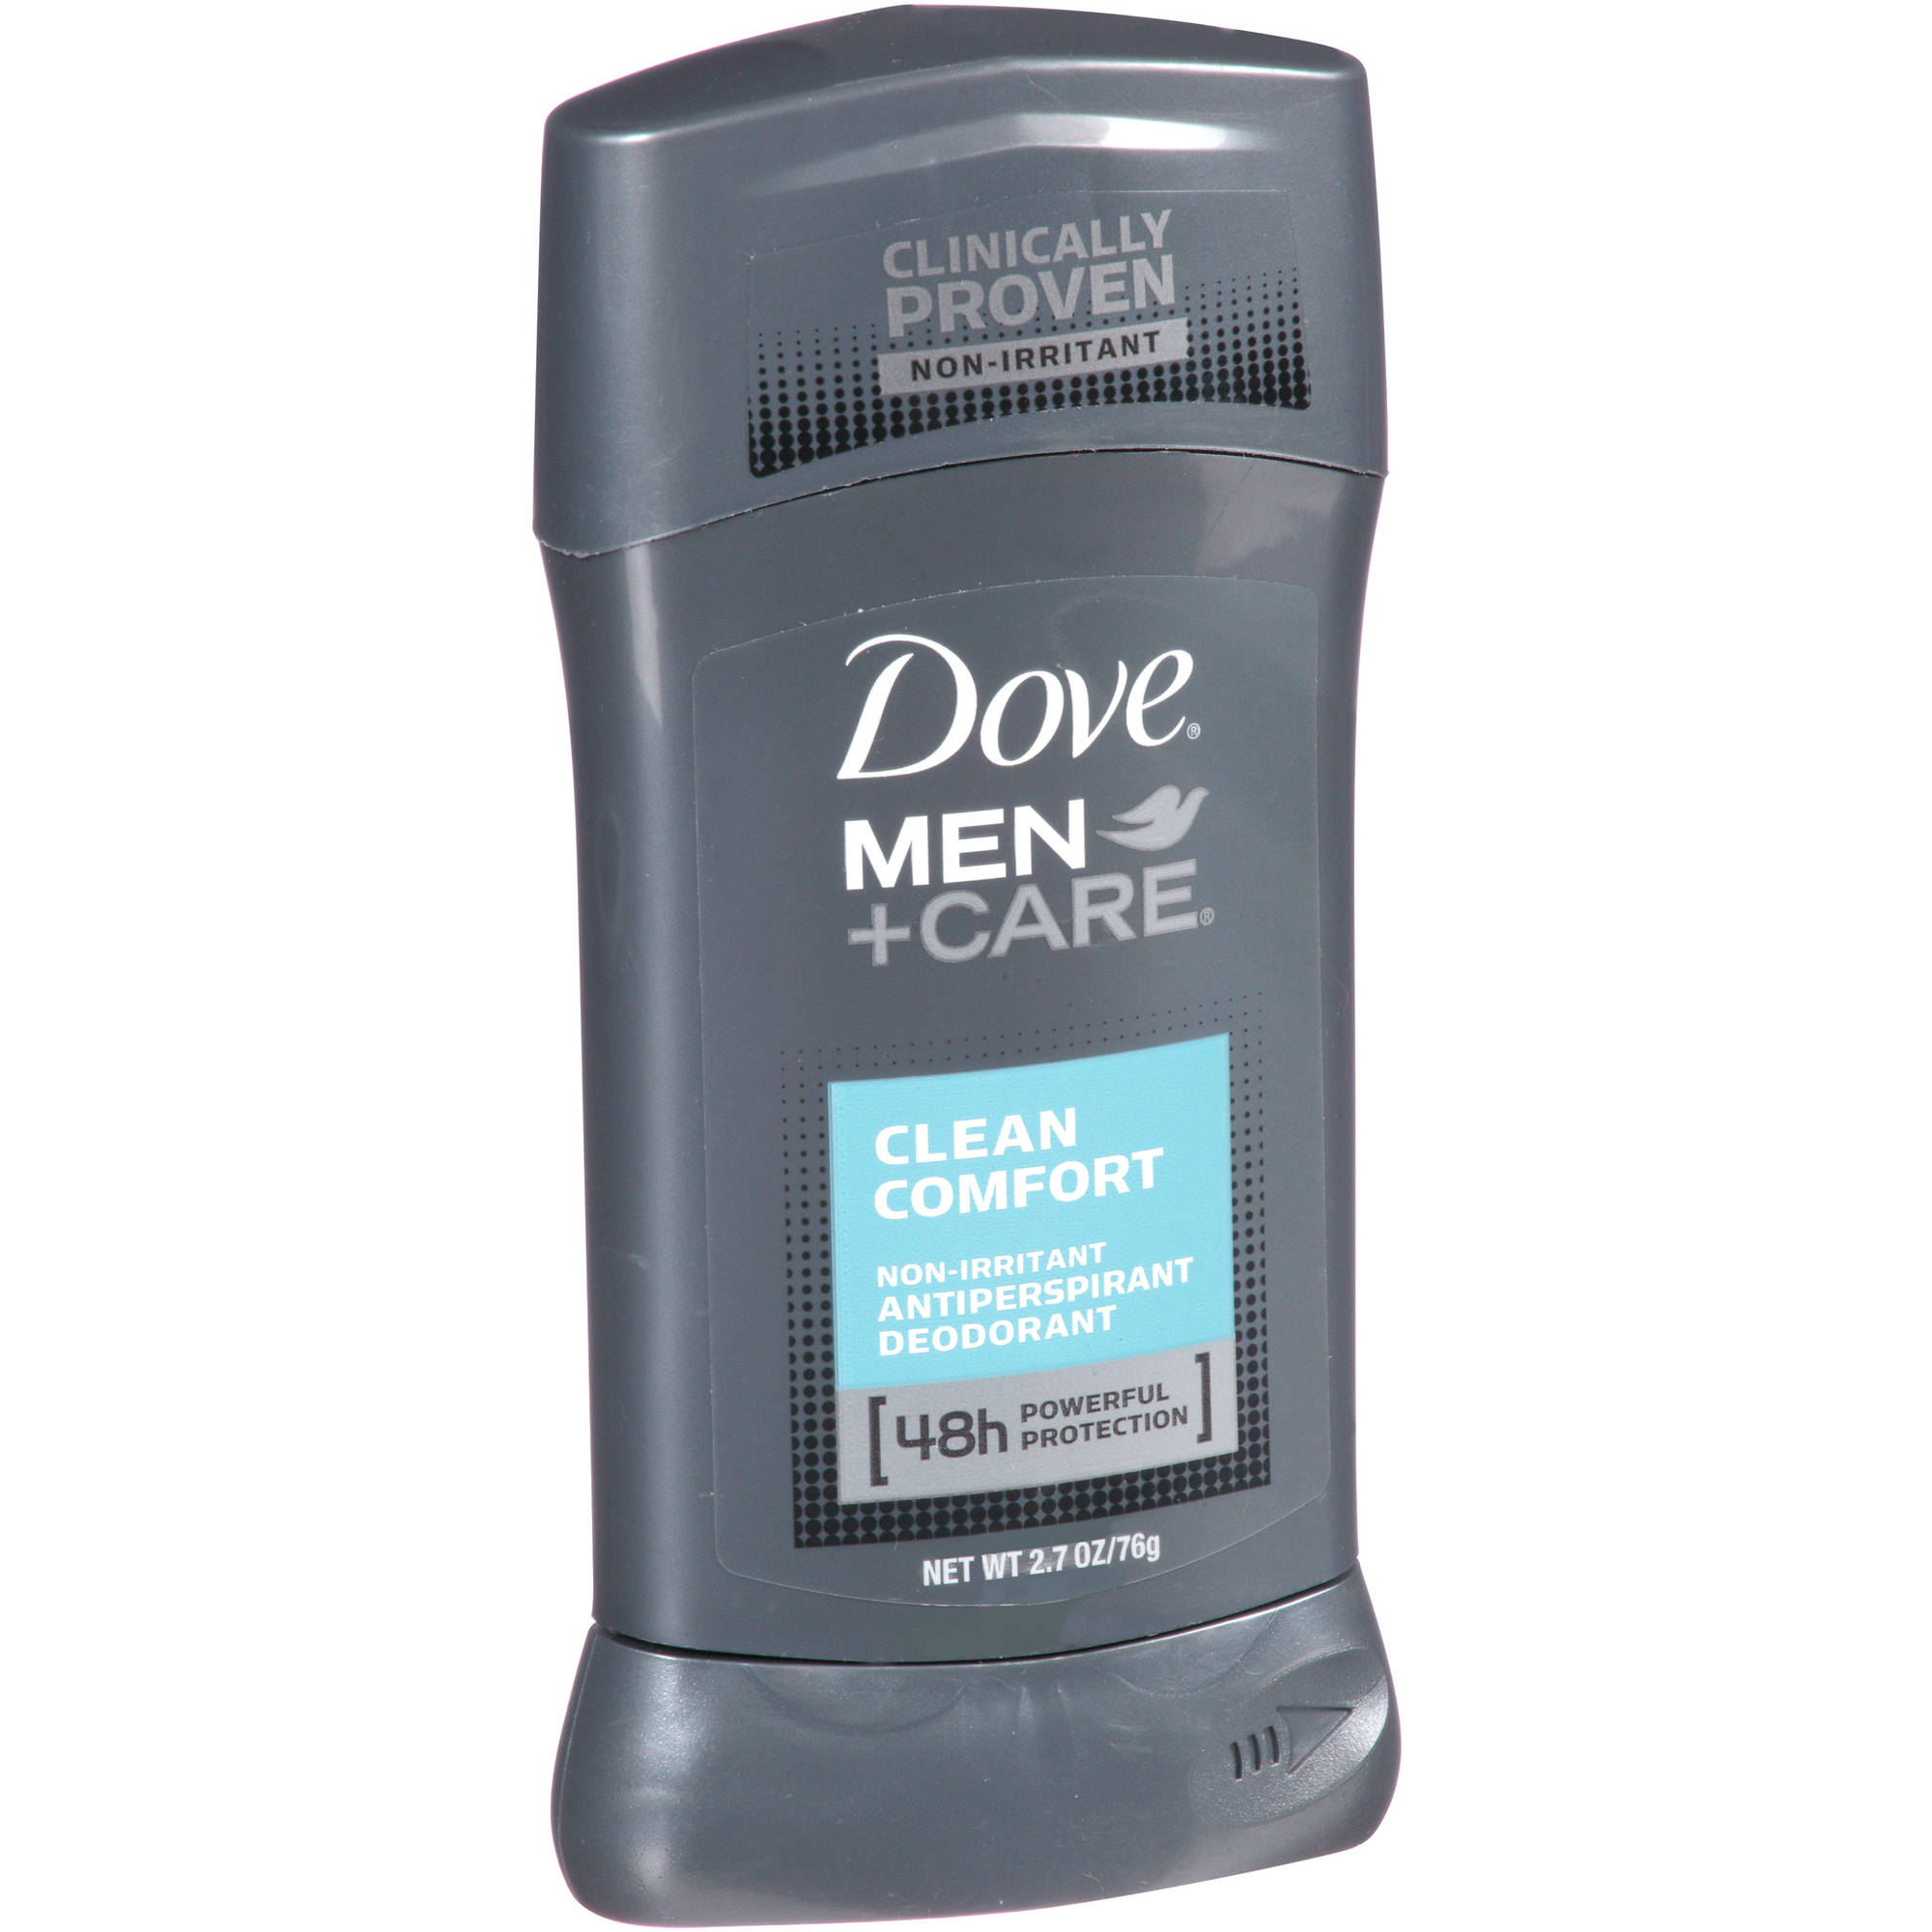 Dove Men+Care Clean Comfort Antiperspirant Deodorant, 2.7 oz